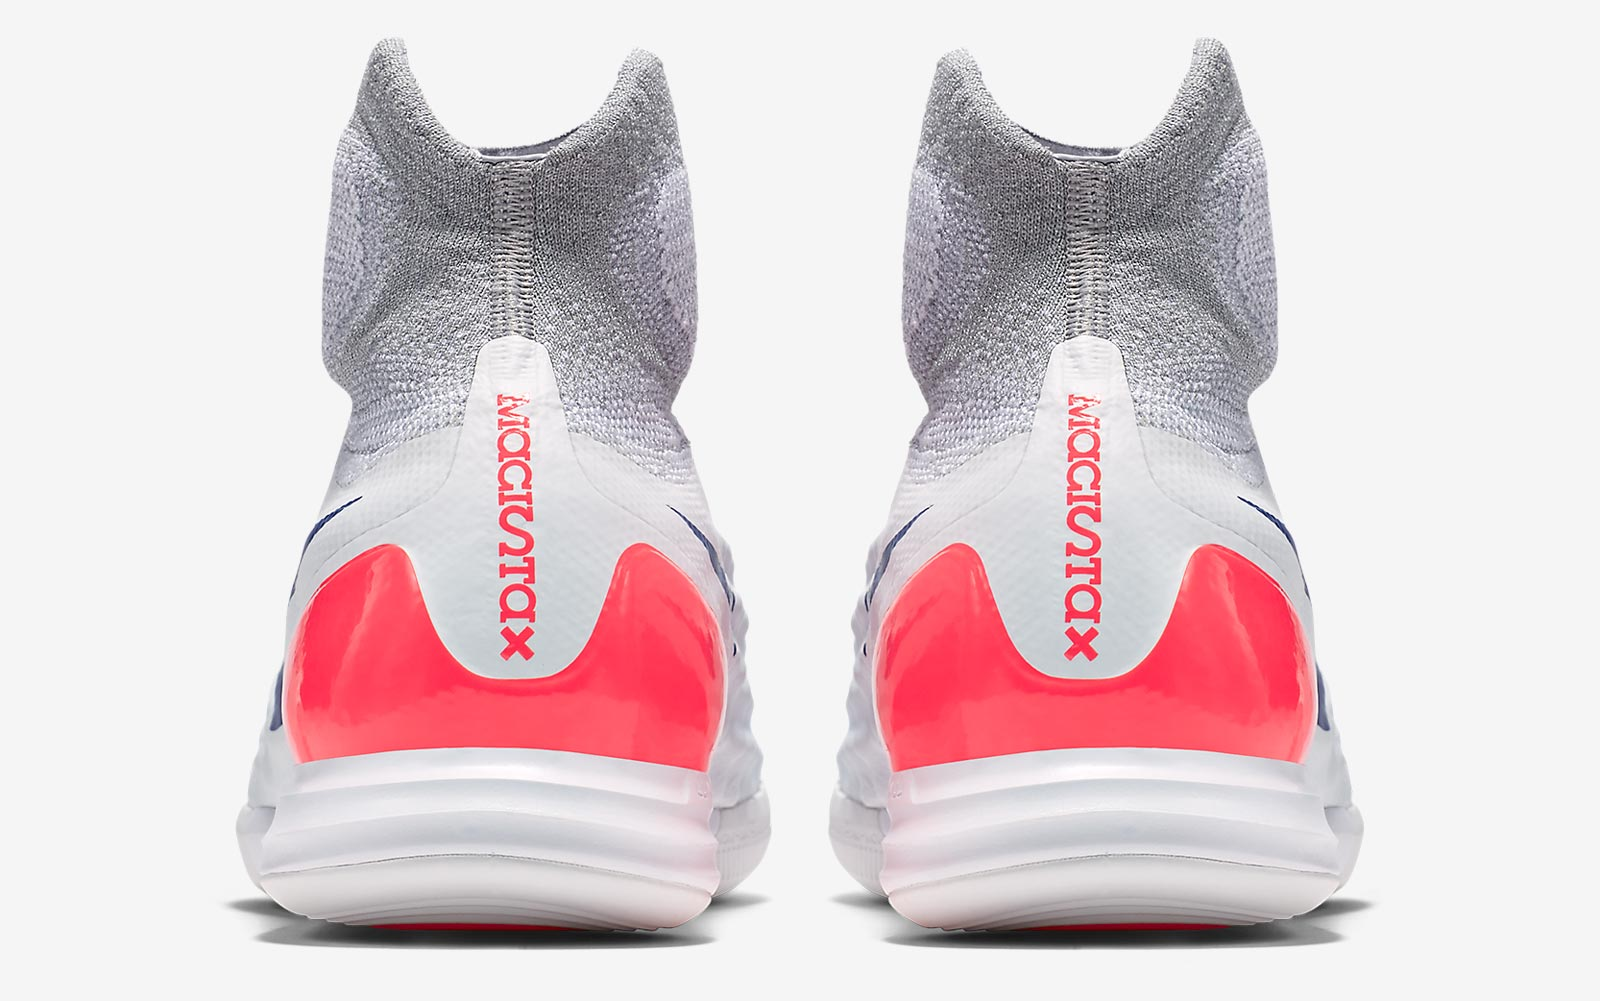 size 40 dbf13 506bc Share your thoughts on this new colorway of the Nike MagistaX Proximo II in  the comments section below.